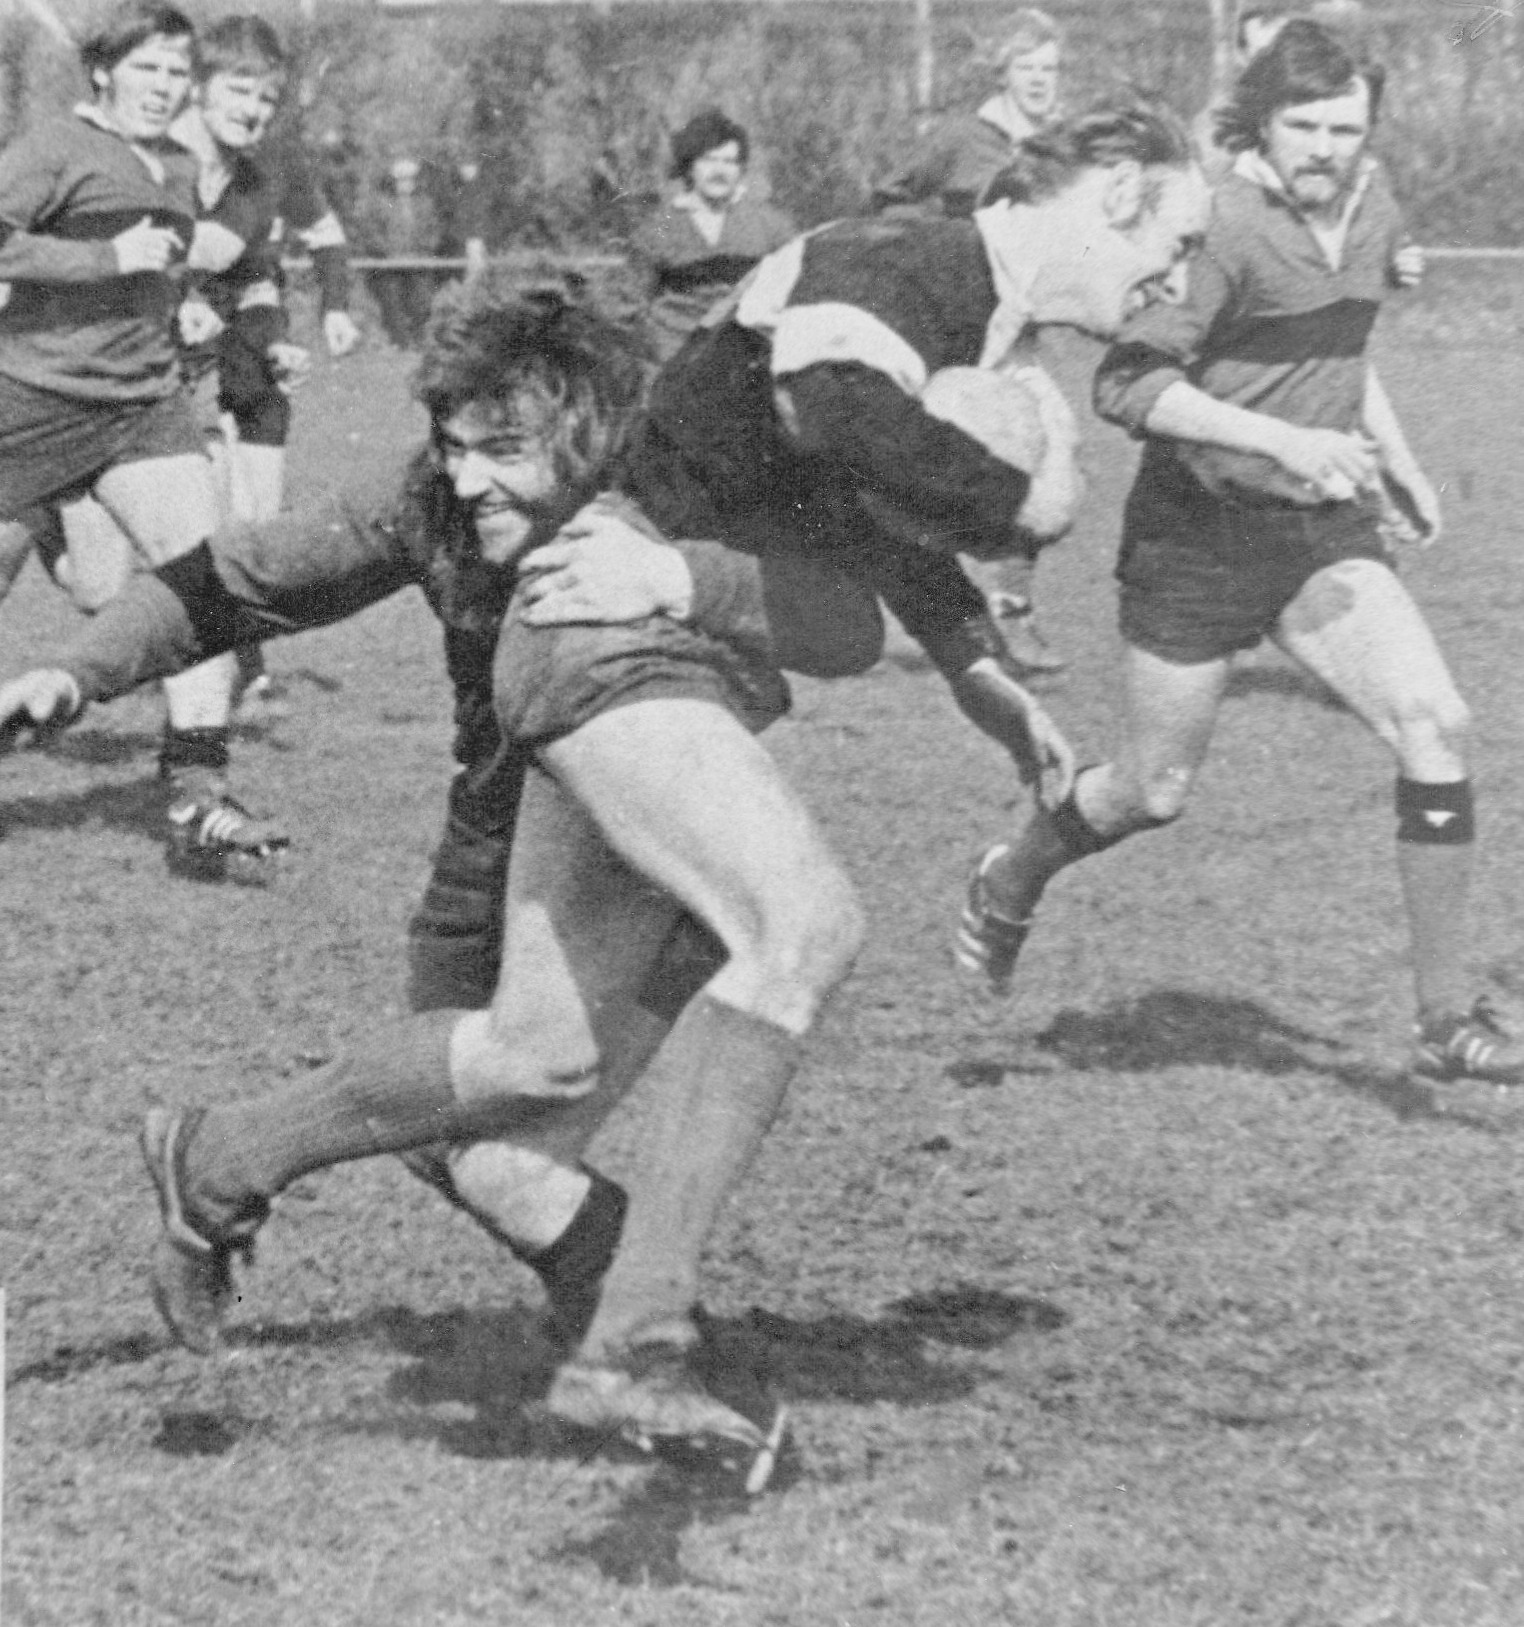 FUN TIMES: One of my good games in 1976, when I managed to bring down this Bedwas Seconds winger every time he tried to get past me